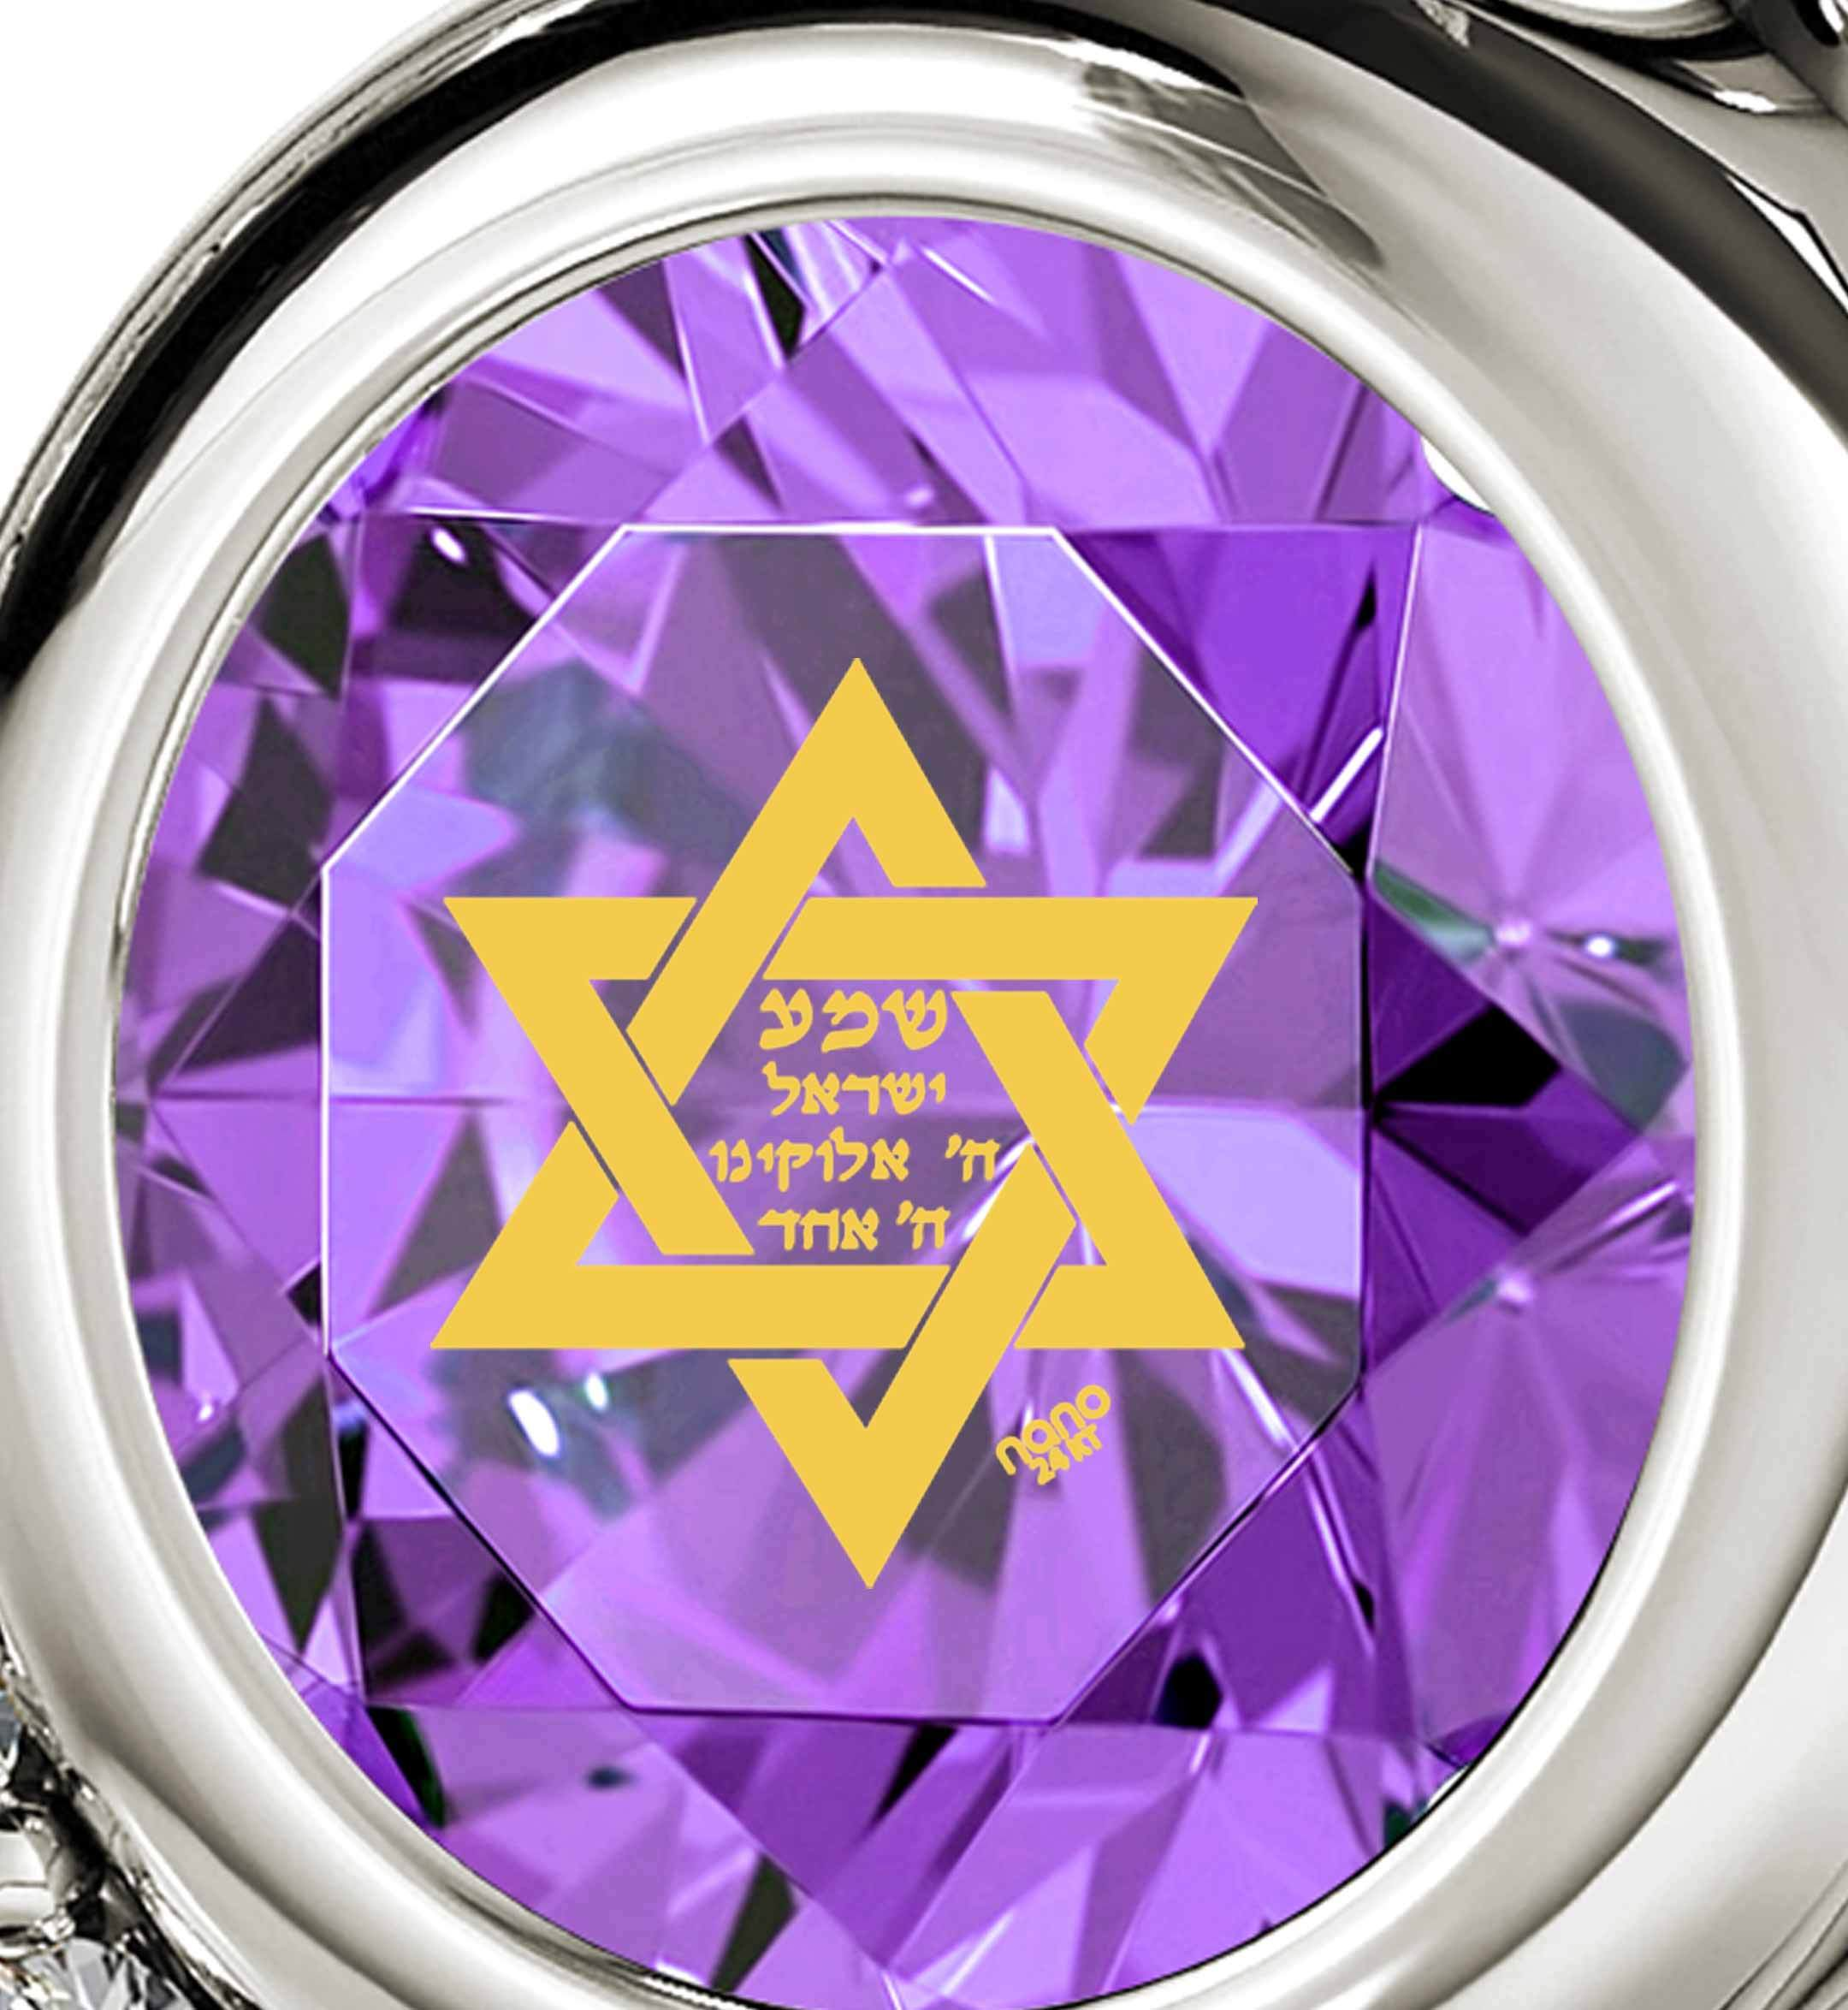 """Shema Yisrael"" Engraved in 24k, Jewish Jewelry with Amethyst Stone Pendant, Judaica Gifts, Nano Jewelry"